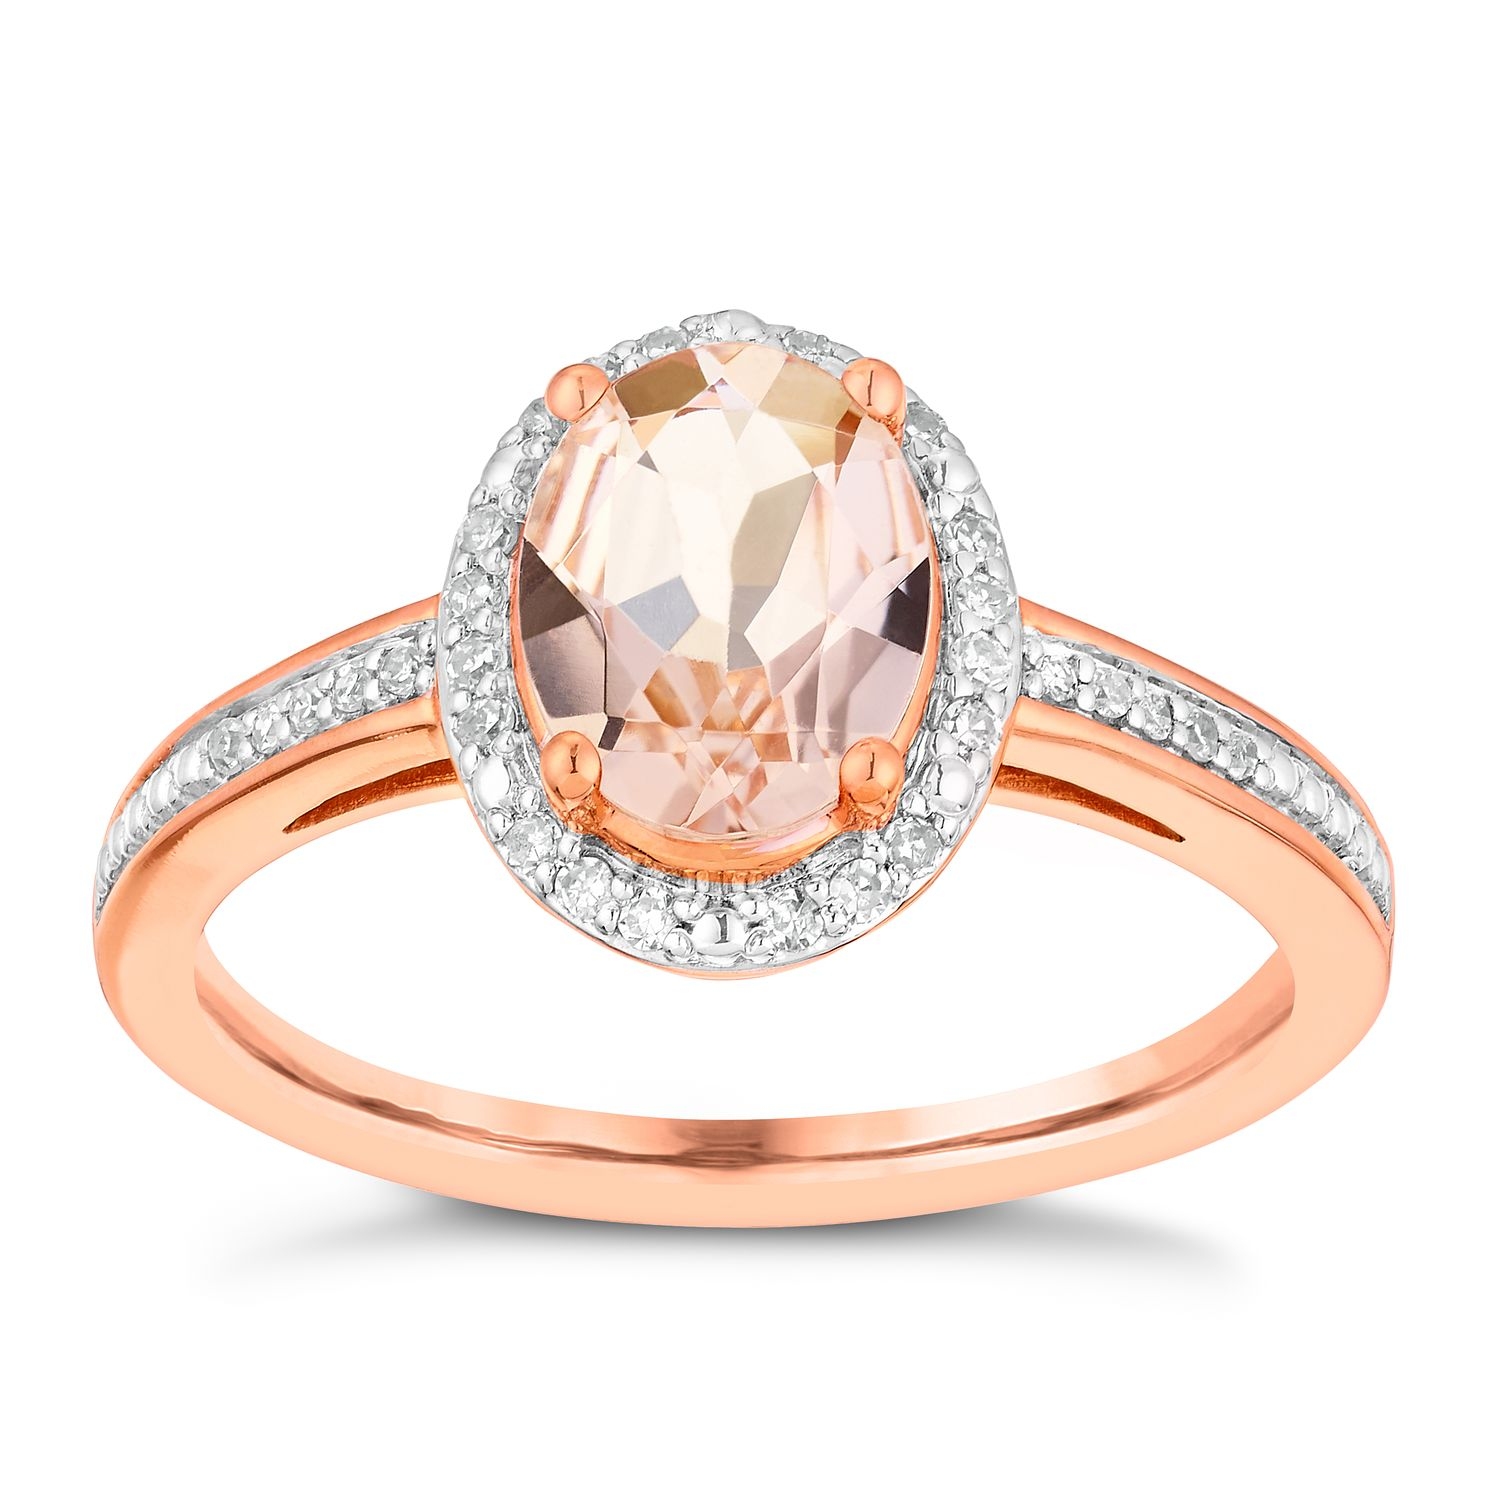 diamonds eternity diamond main bespoke blog introducing morganite